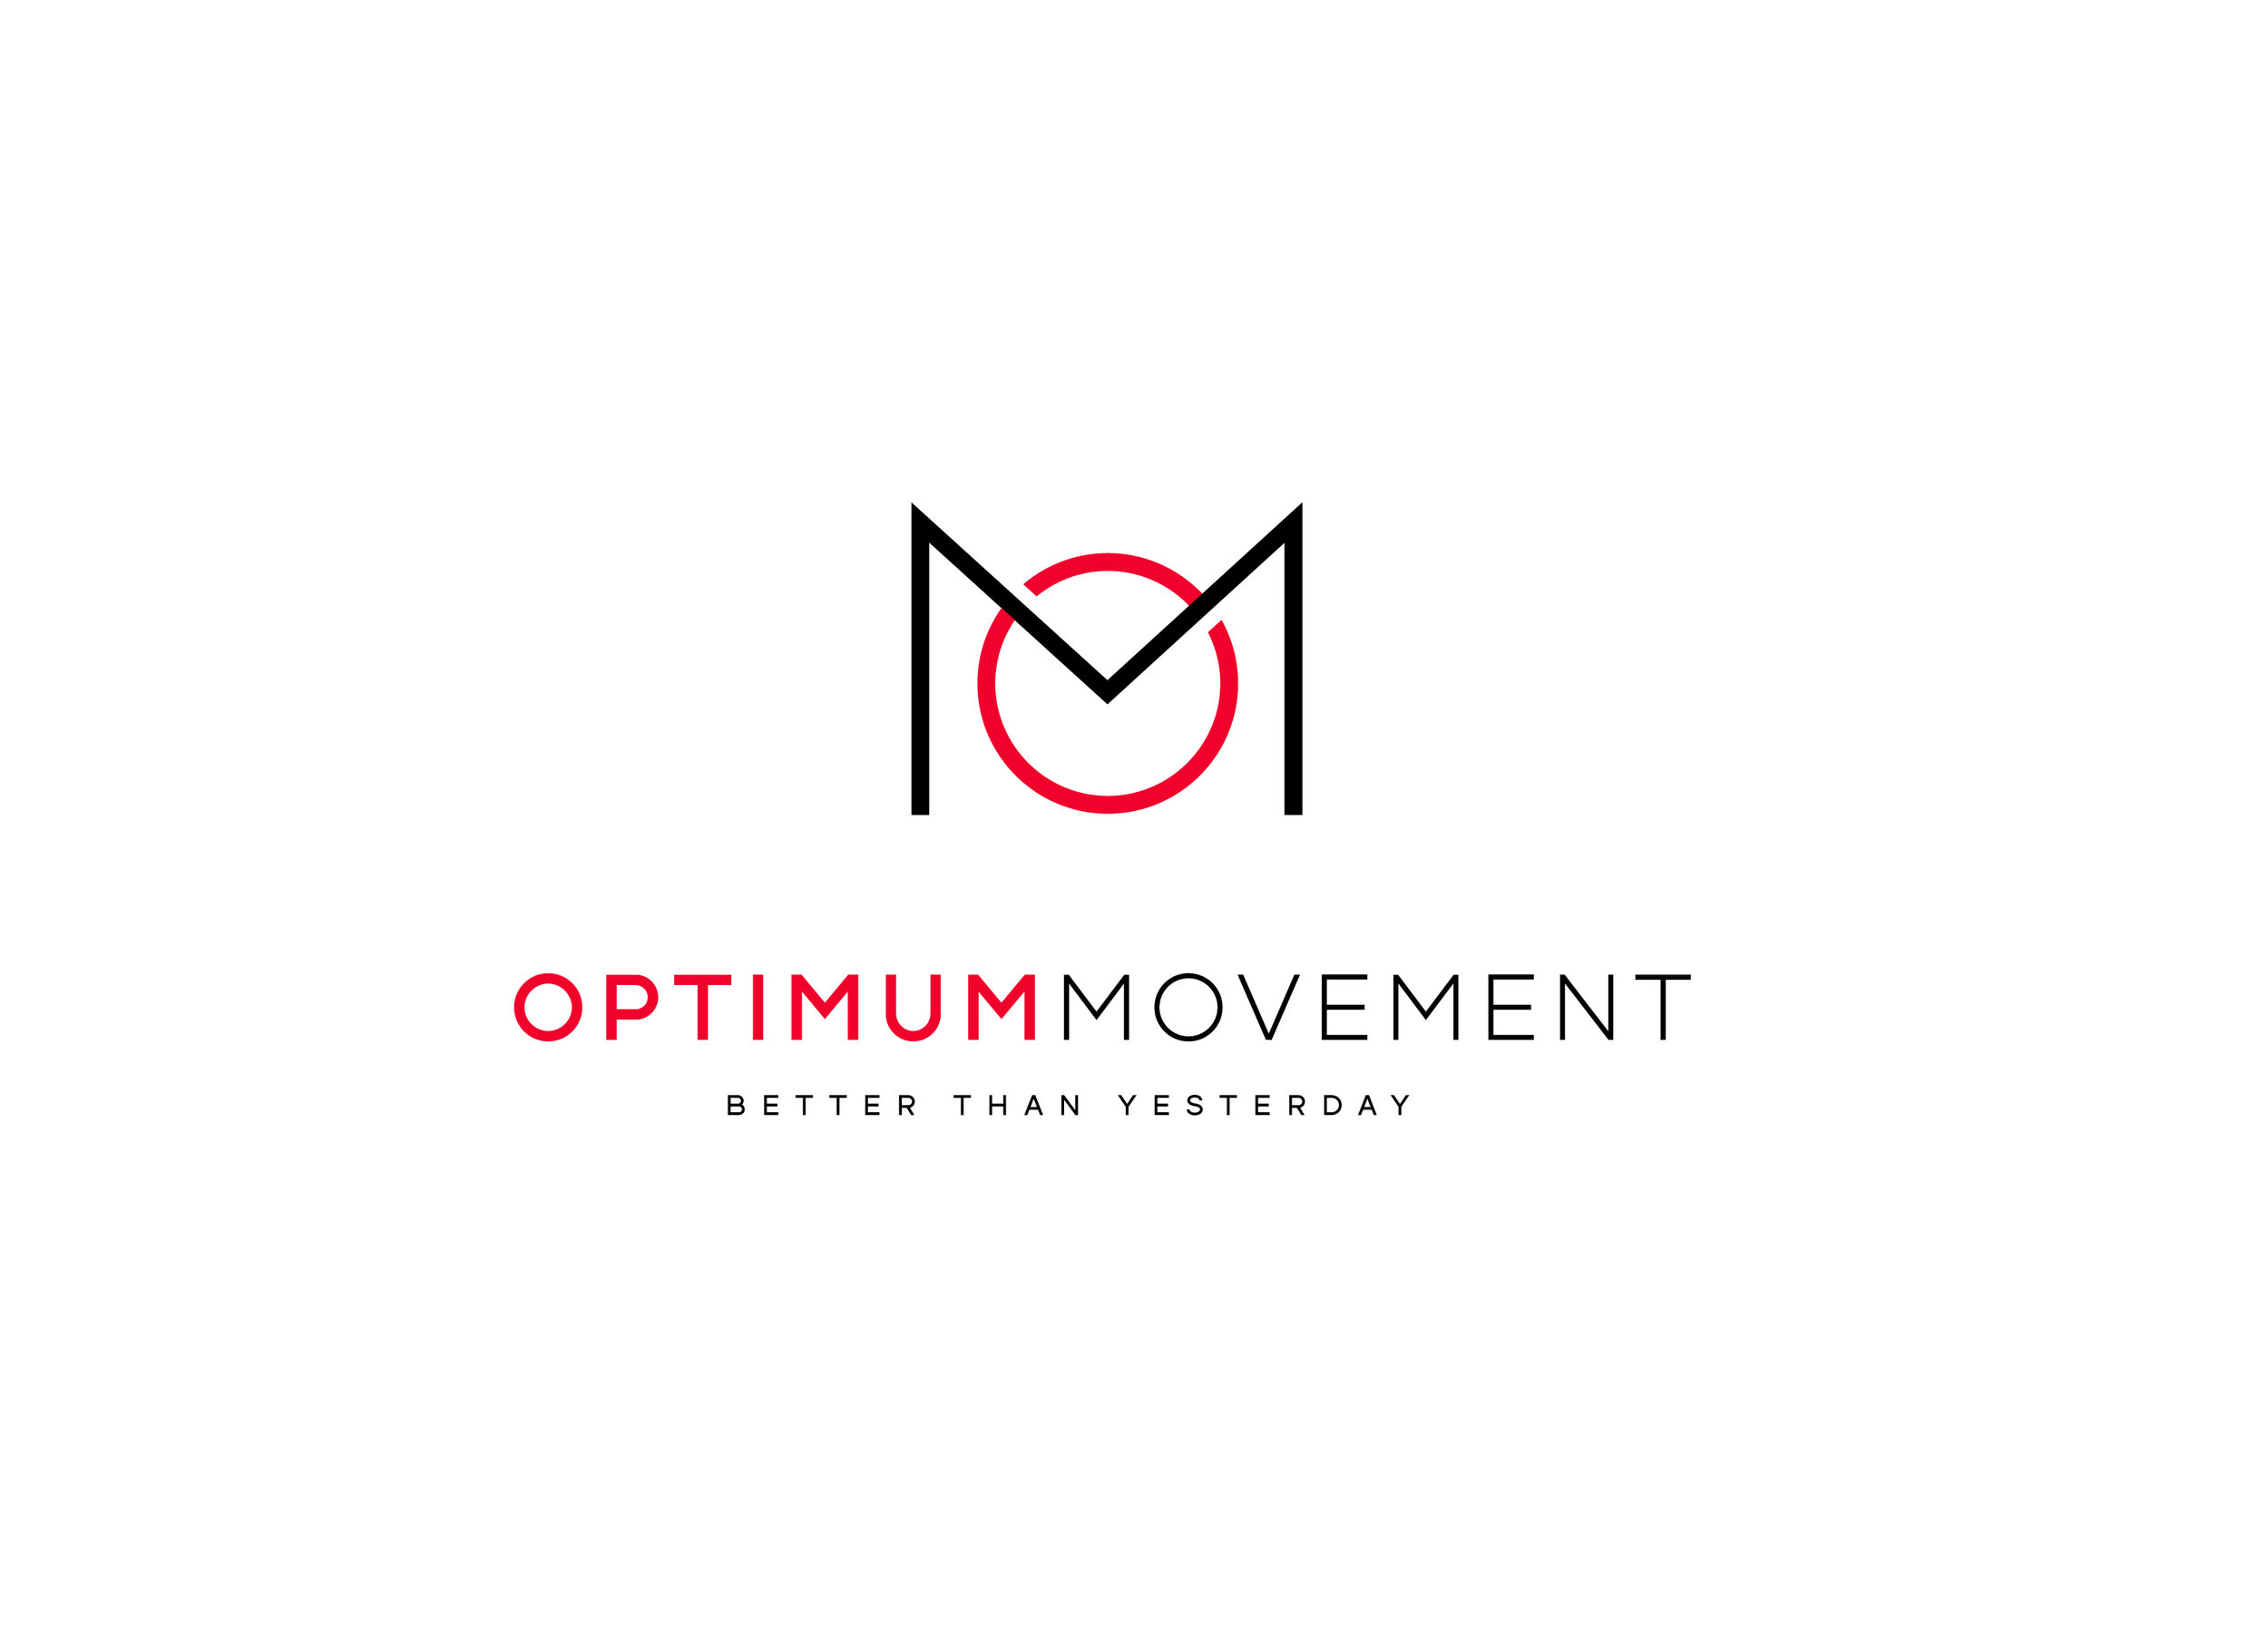 OPTIMUMMOVEMENTlogo.jpg